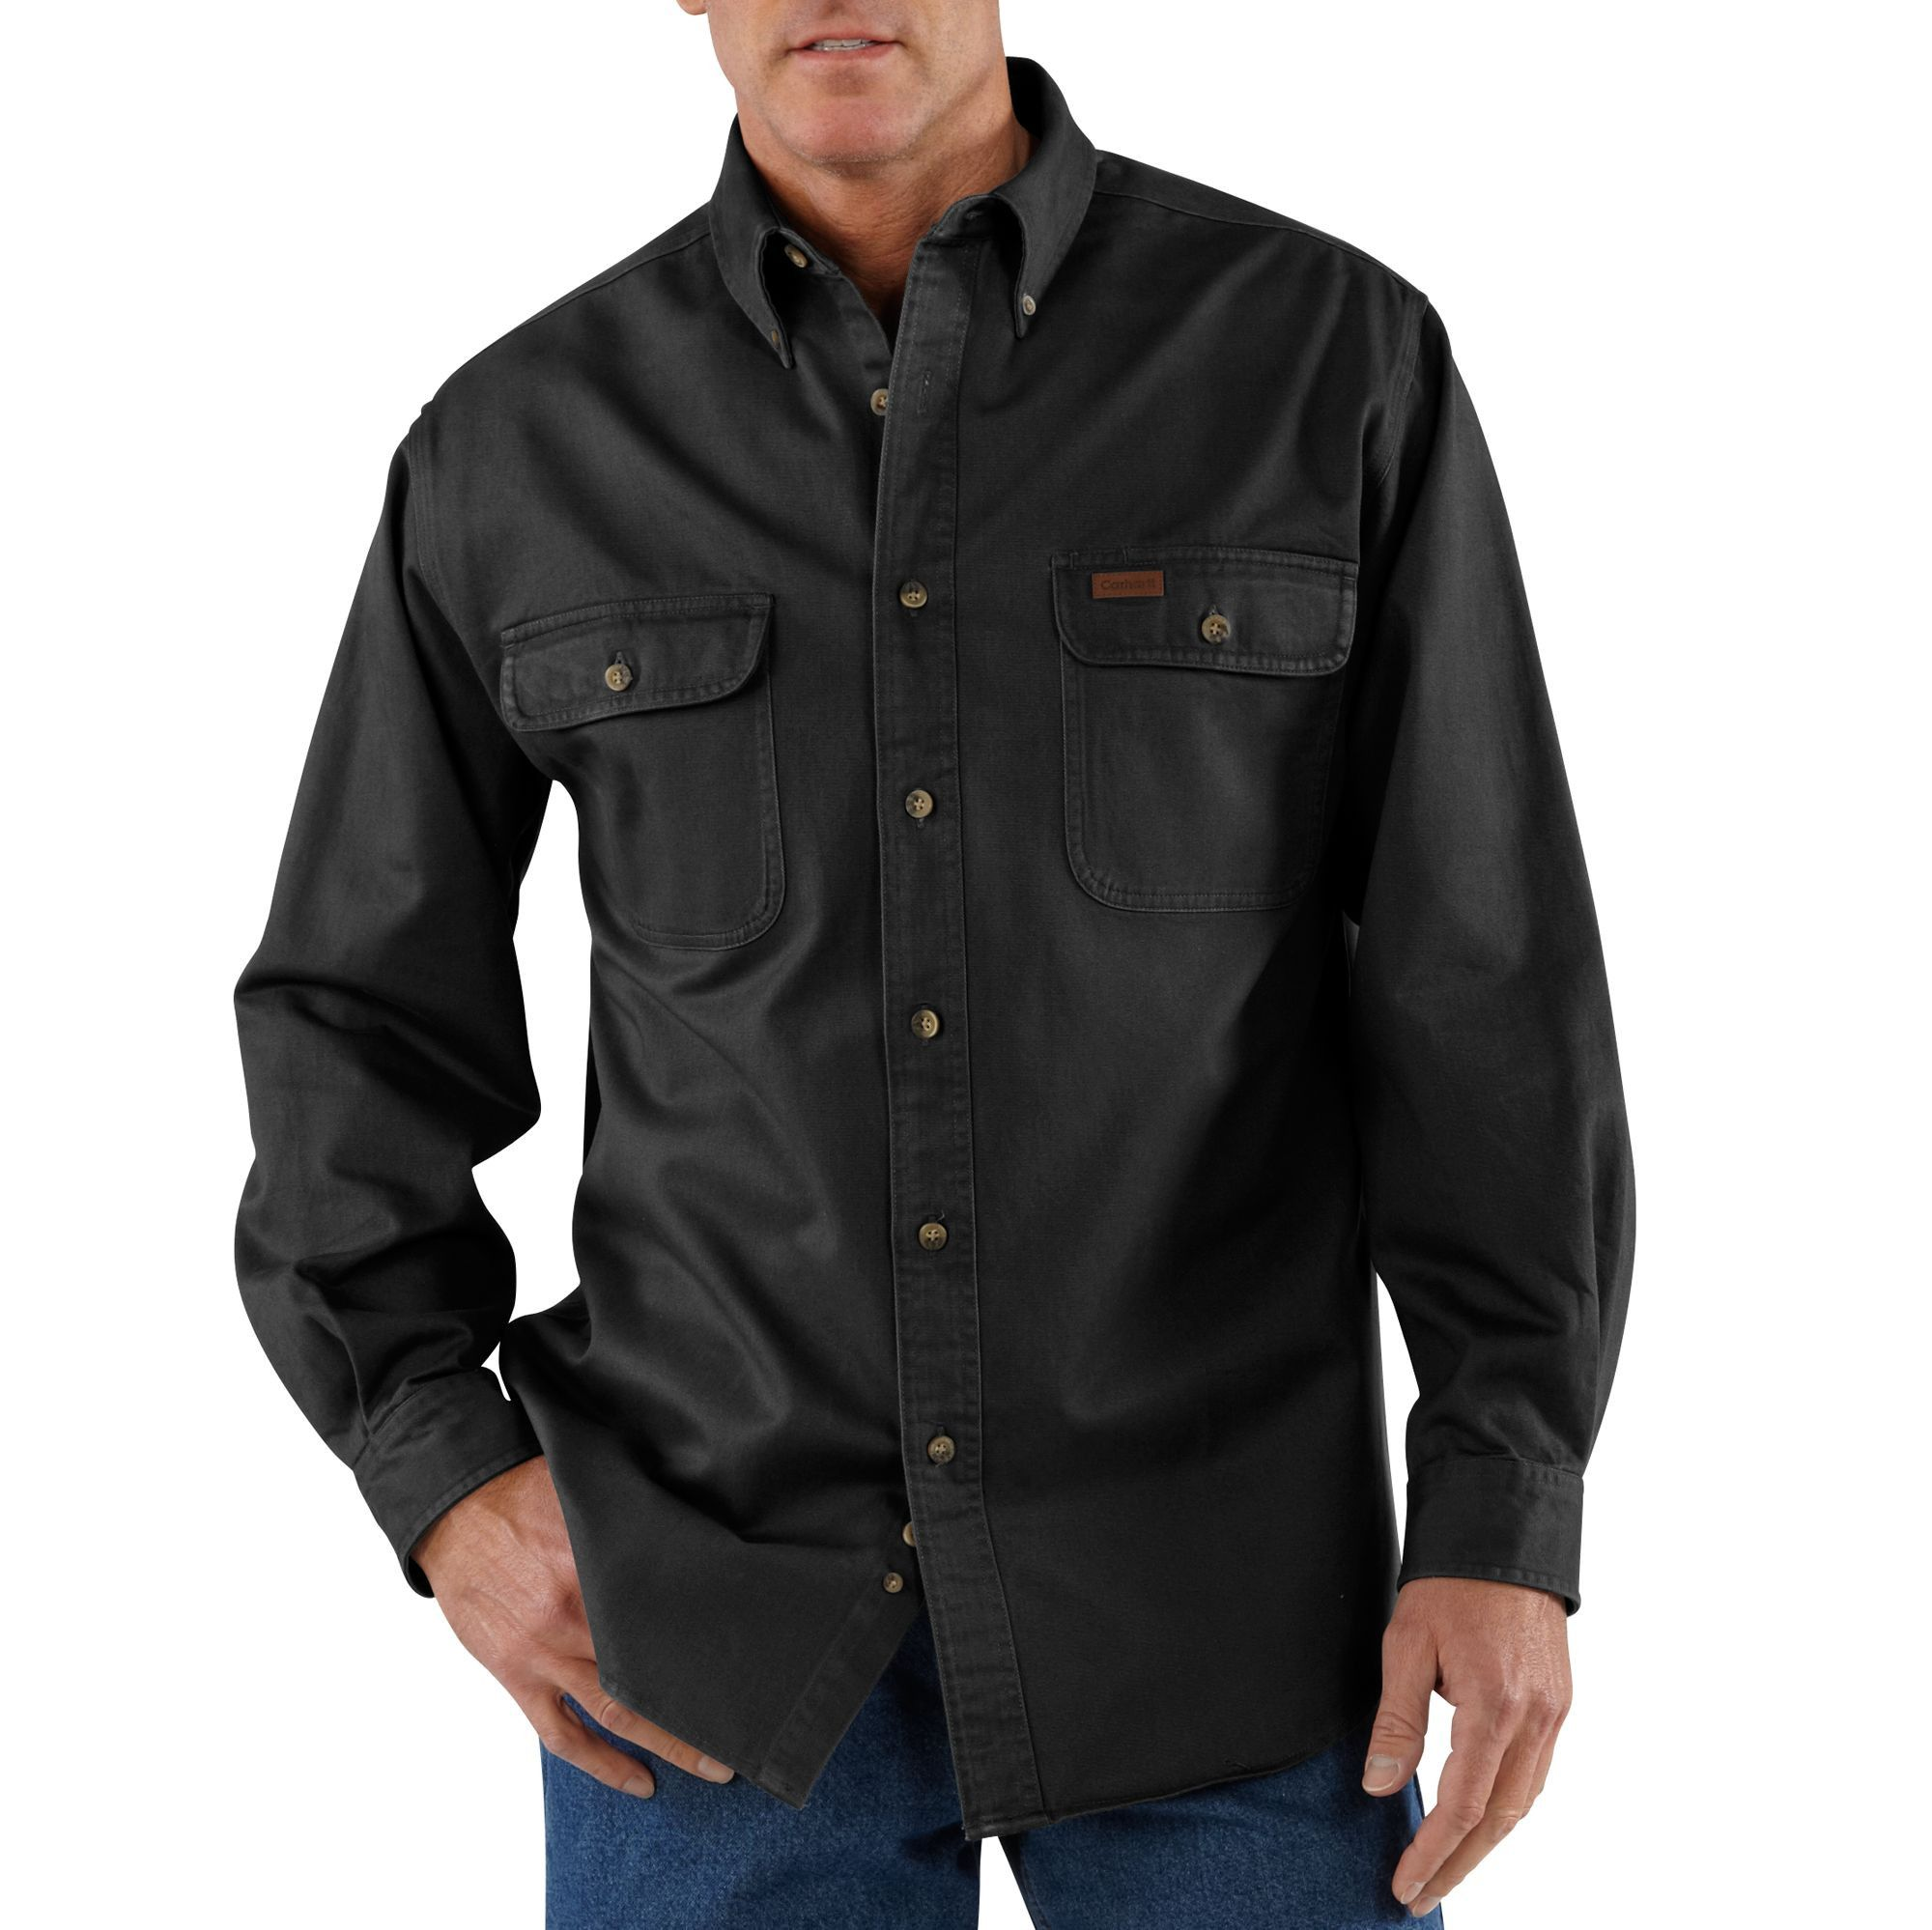 Flannel shirt tied around waist guys  Carhartt Mens Oakman Work Shirt S Black  Products  Pinterest